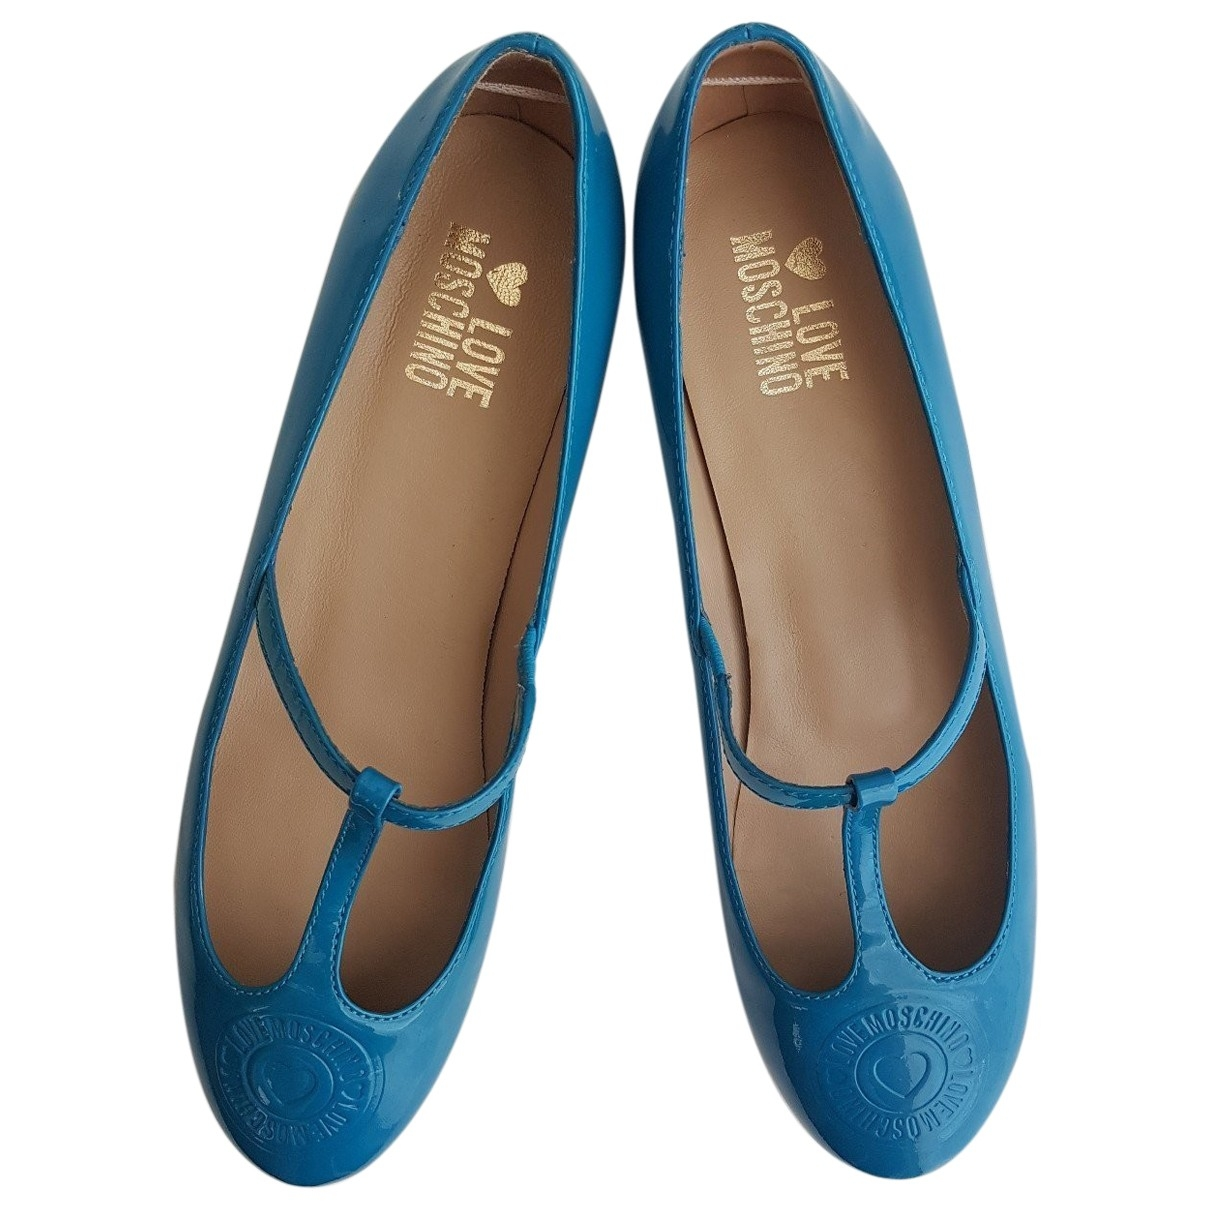 Moschino Love - Ballerines   pour femme en cuir - turquoise